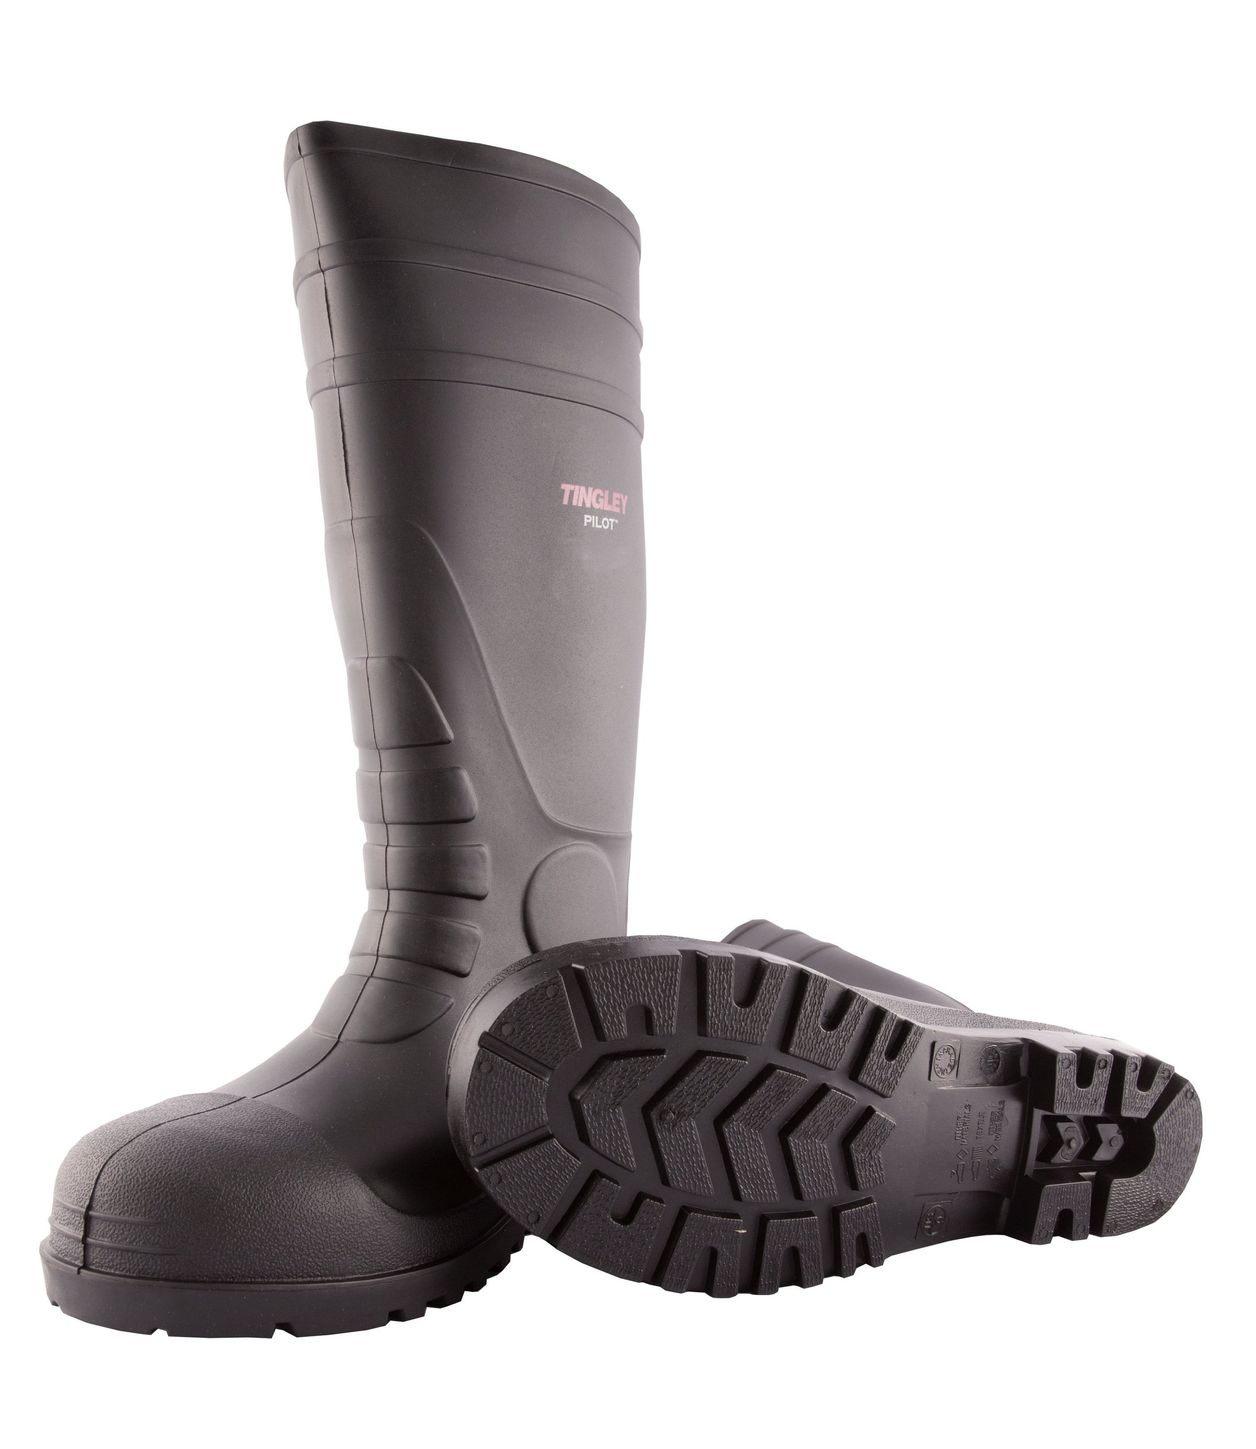 tingley-economical-pvc-rubber-boots-31151-15-tall-example.jpg